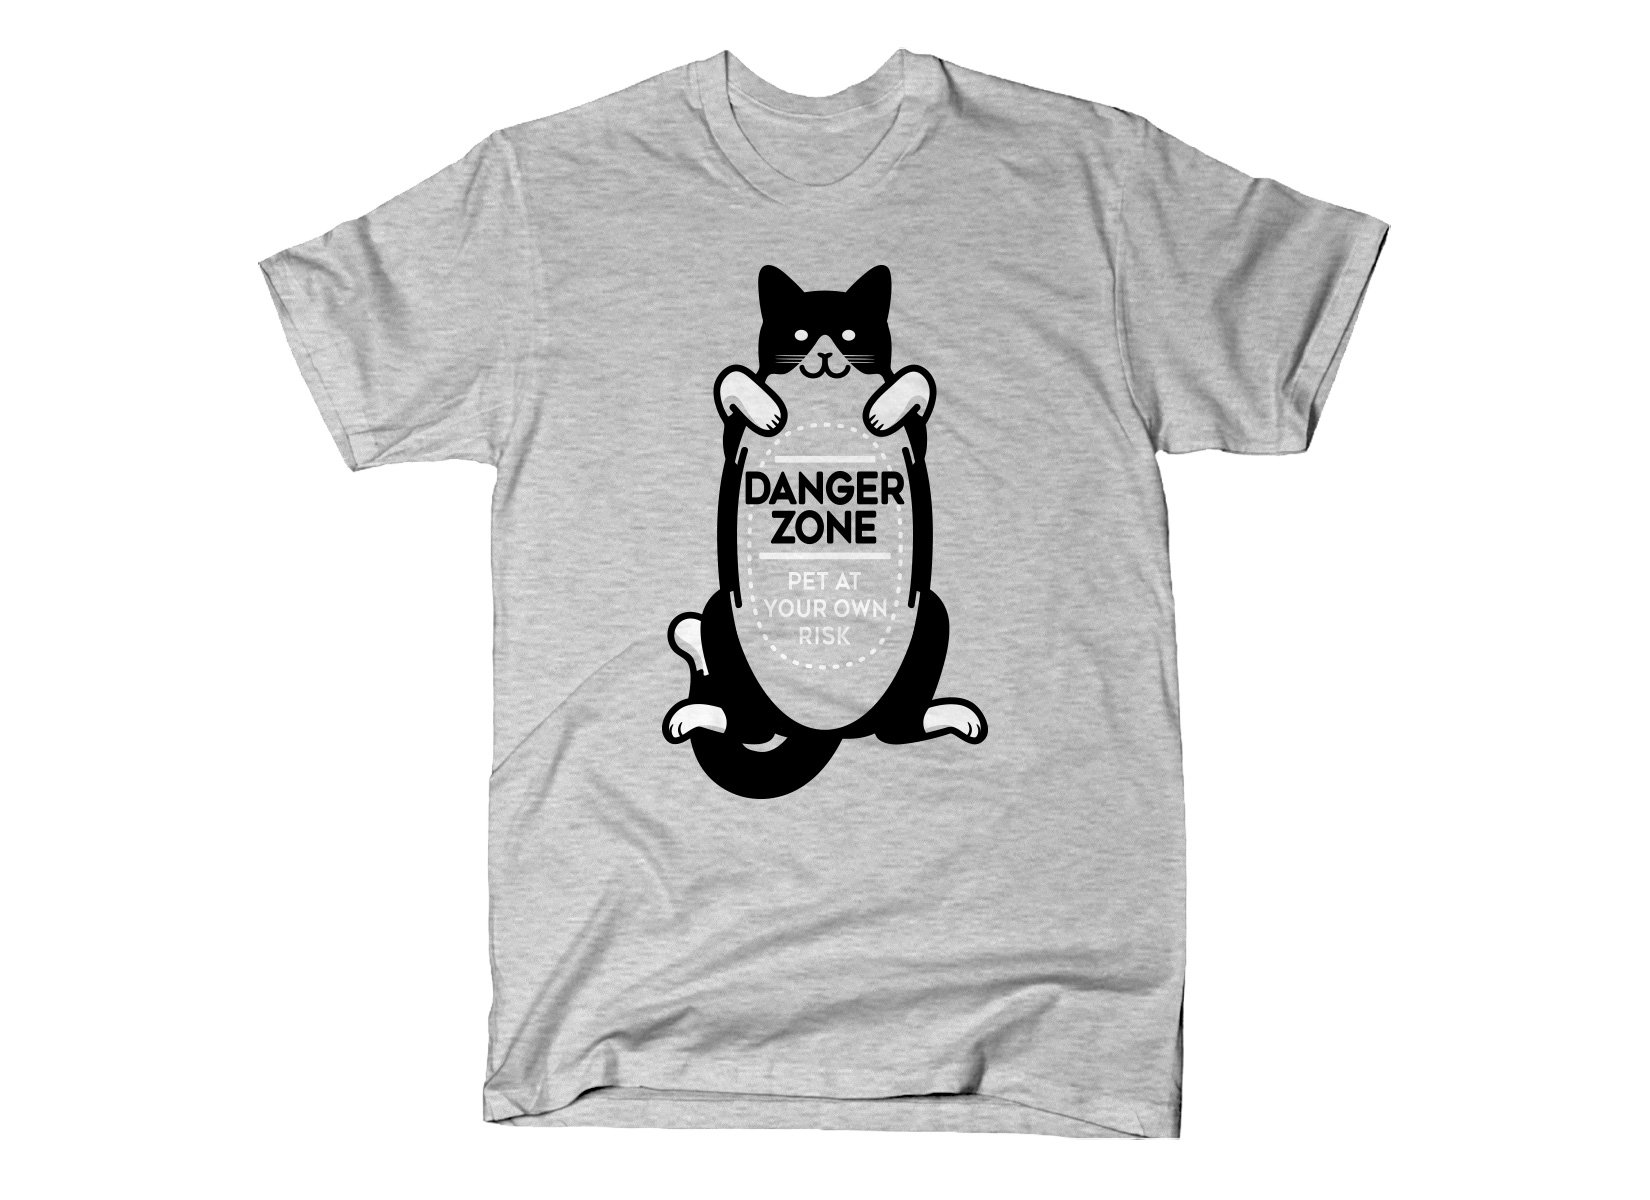 f94c153cd Cat Danger Zone from SnorgTees | Day of the Shirt